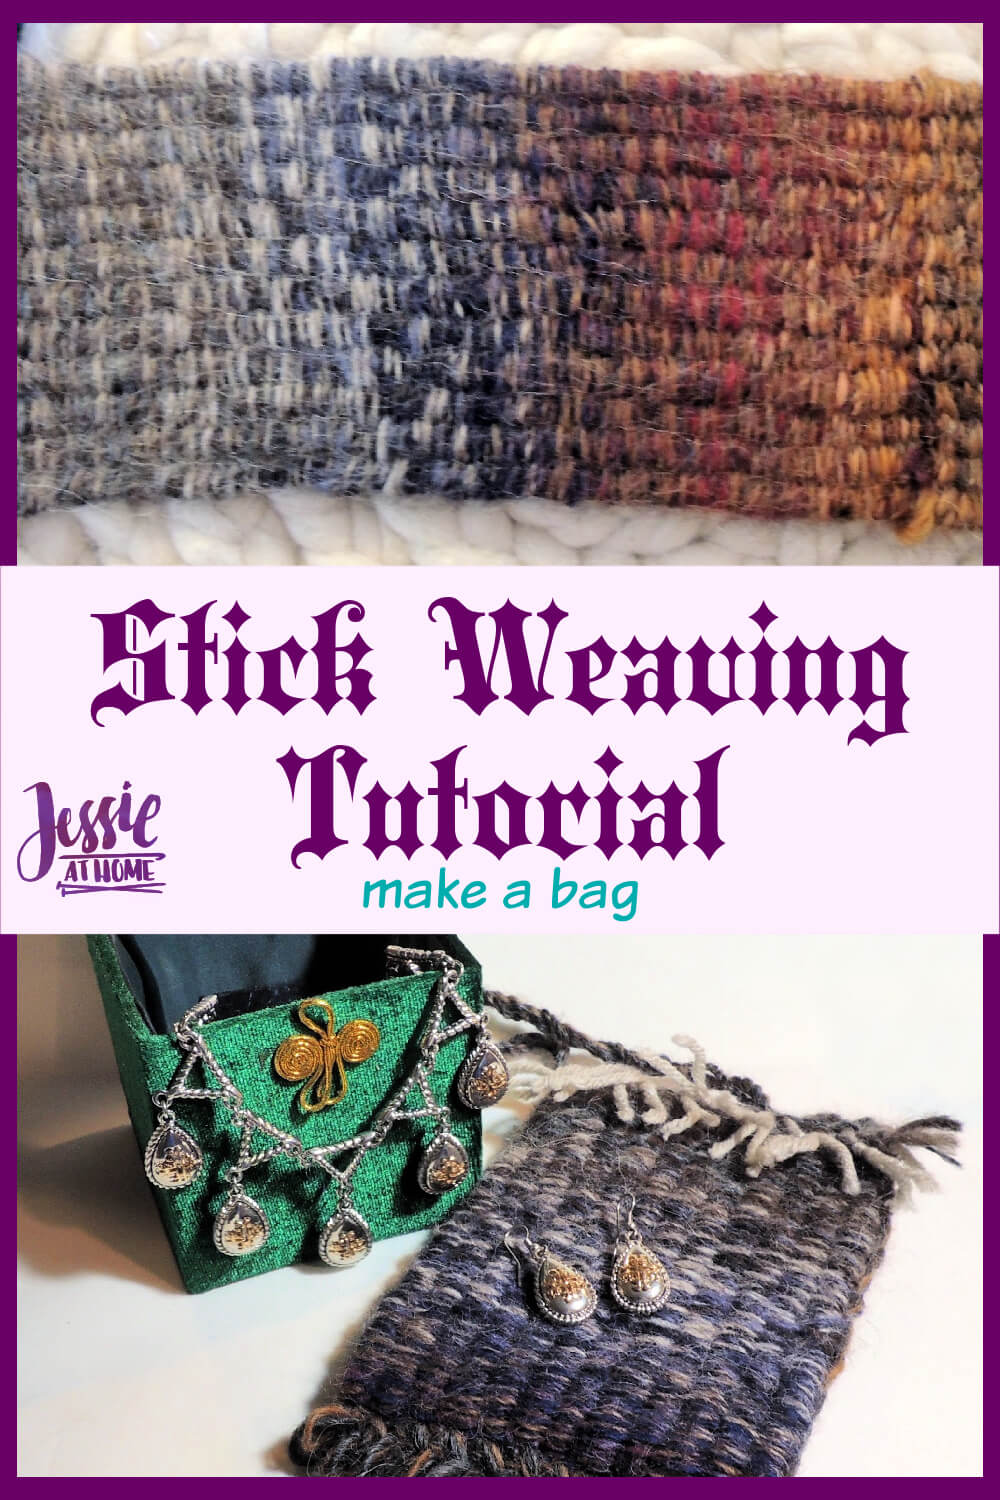 Stick Weaving Tutorial - a fun and useful medieval craft